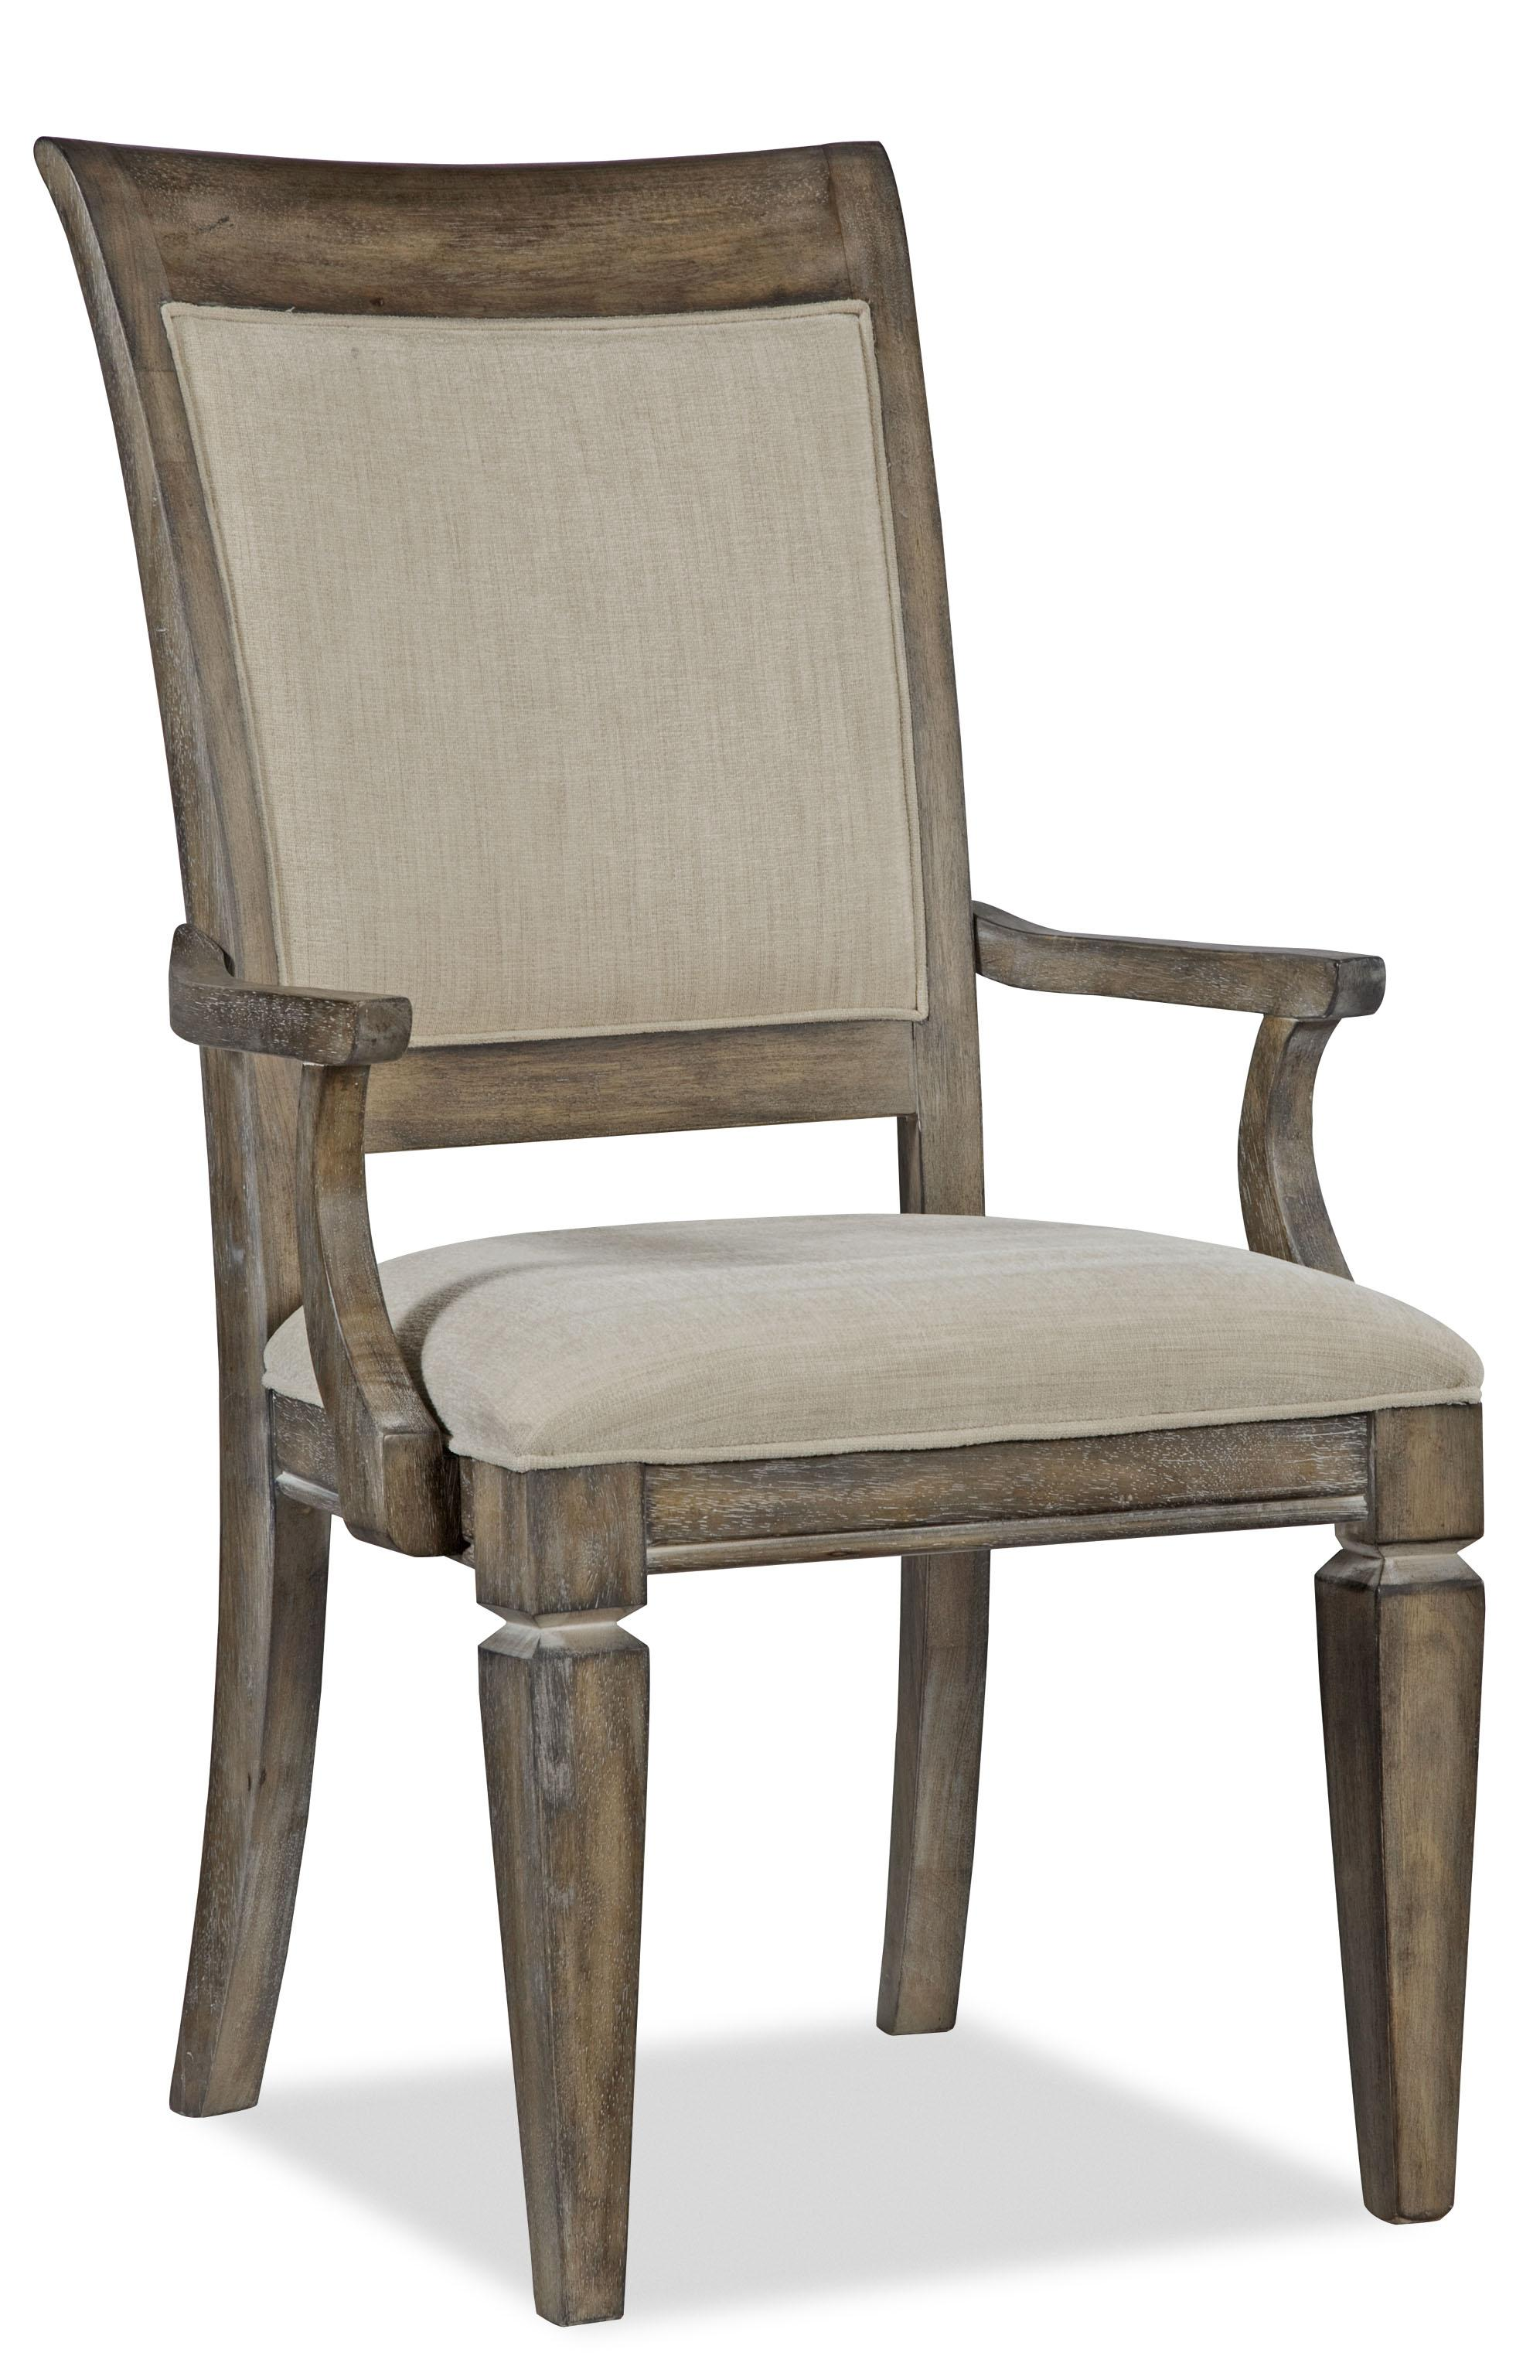 Wonderful image of Upholstered Dining Arm Chair with Exposed Wood X Backrest by Lega  with #5C4F42 color and 1992x3078 pixels